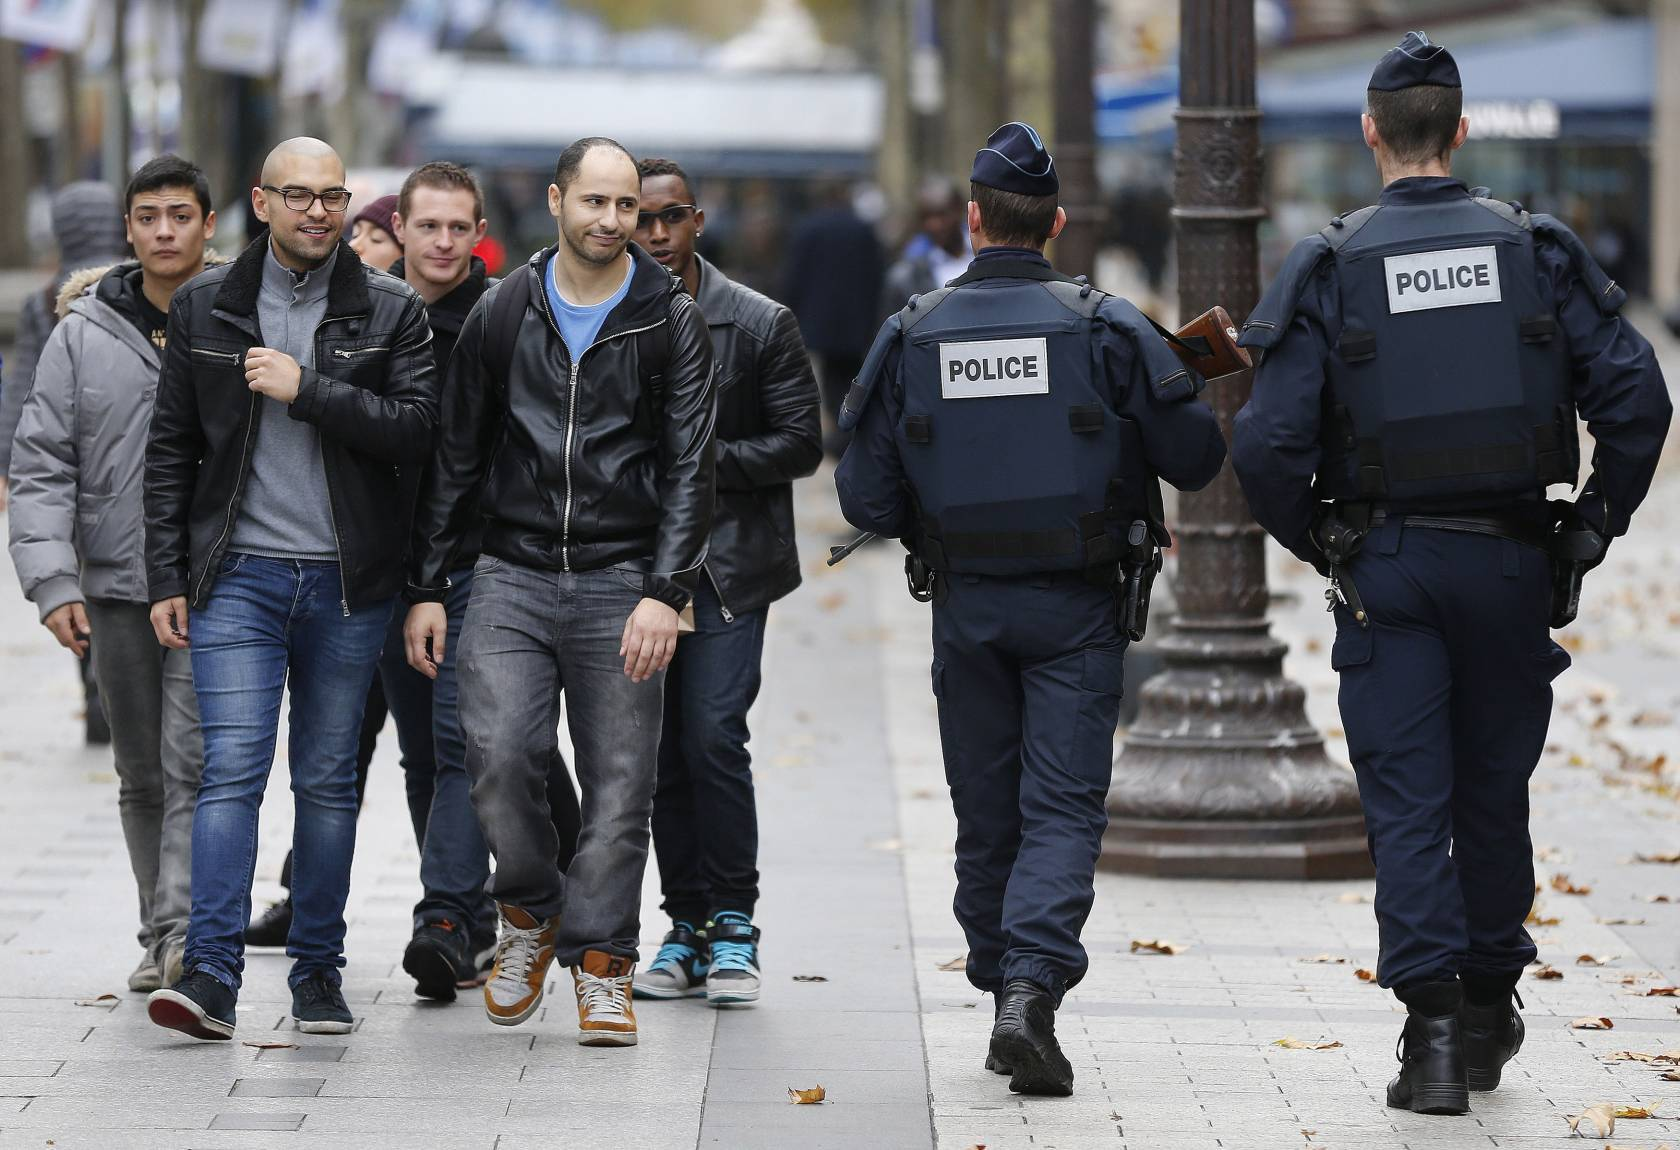 Police forces patrol on the Champs Elysee in Paris.